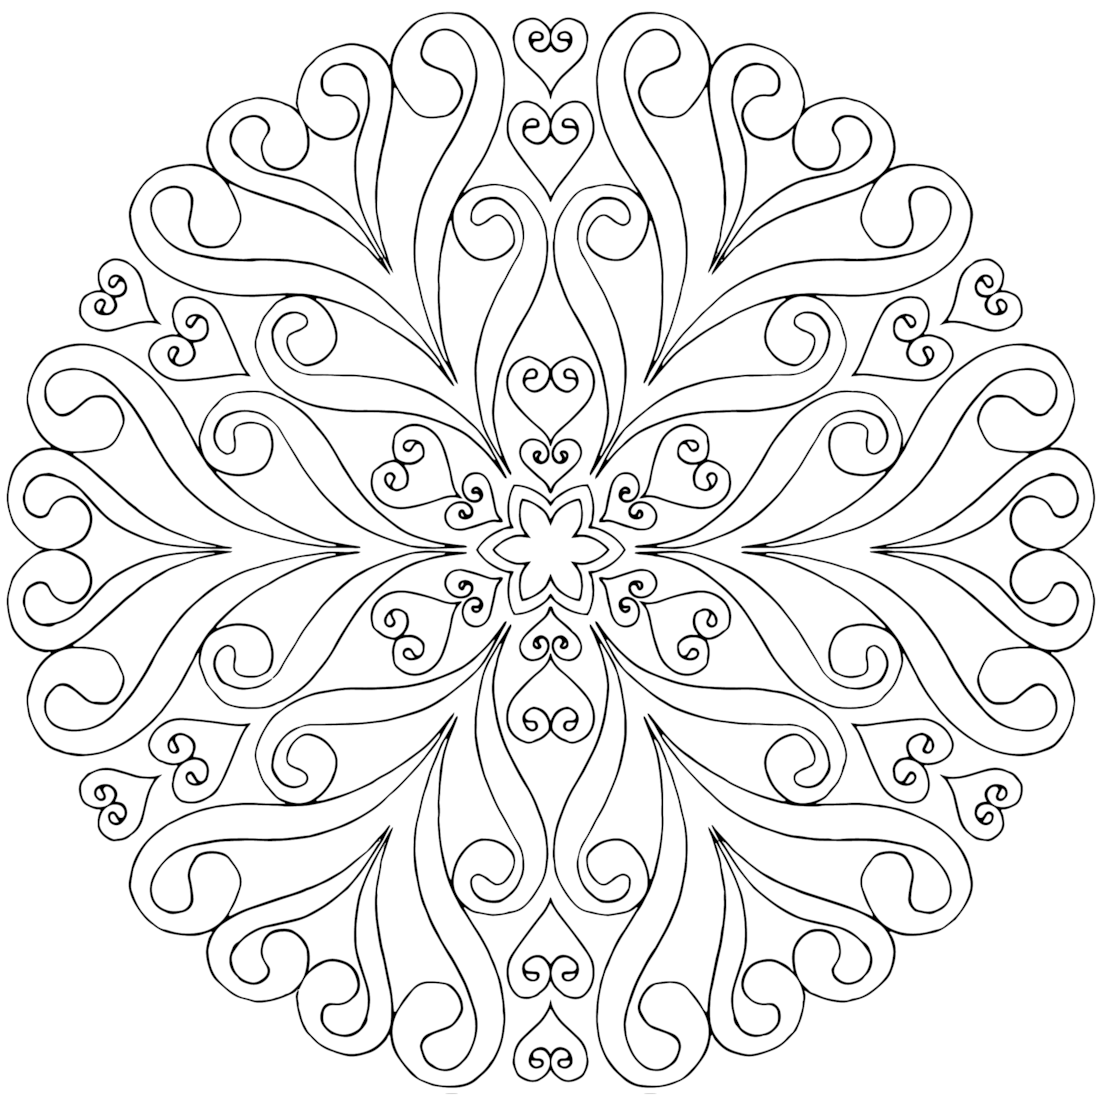 a free mandala coloring page for you to